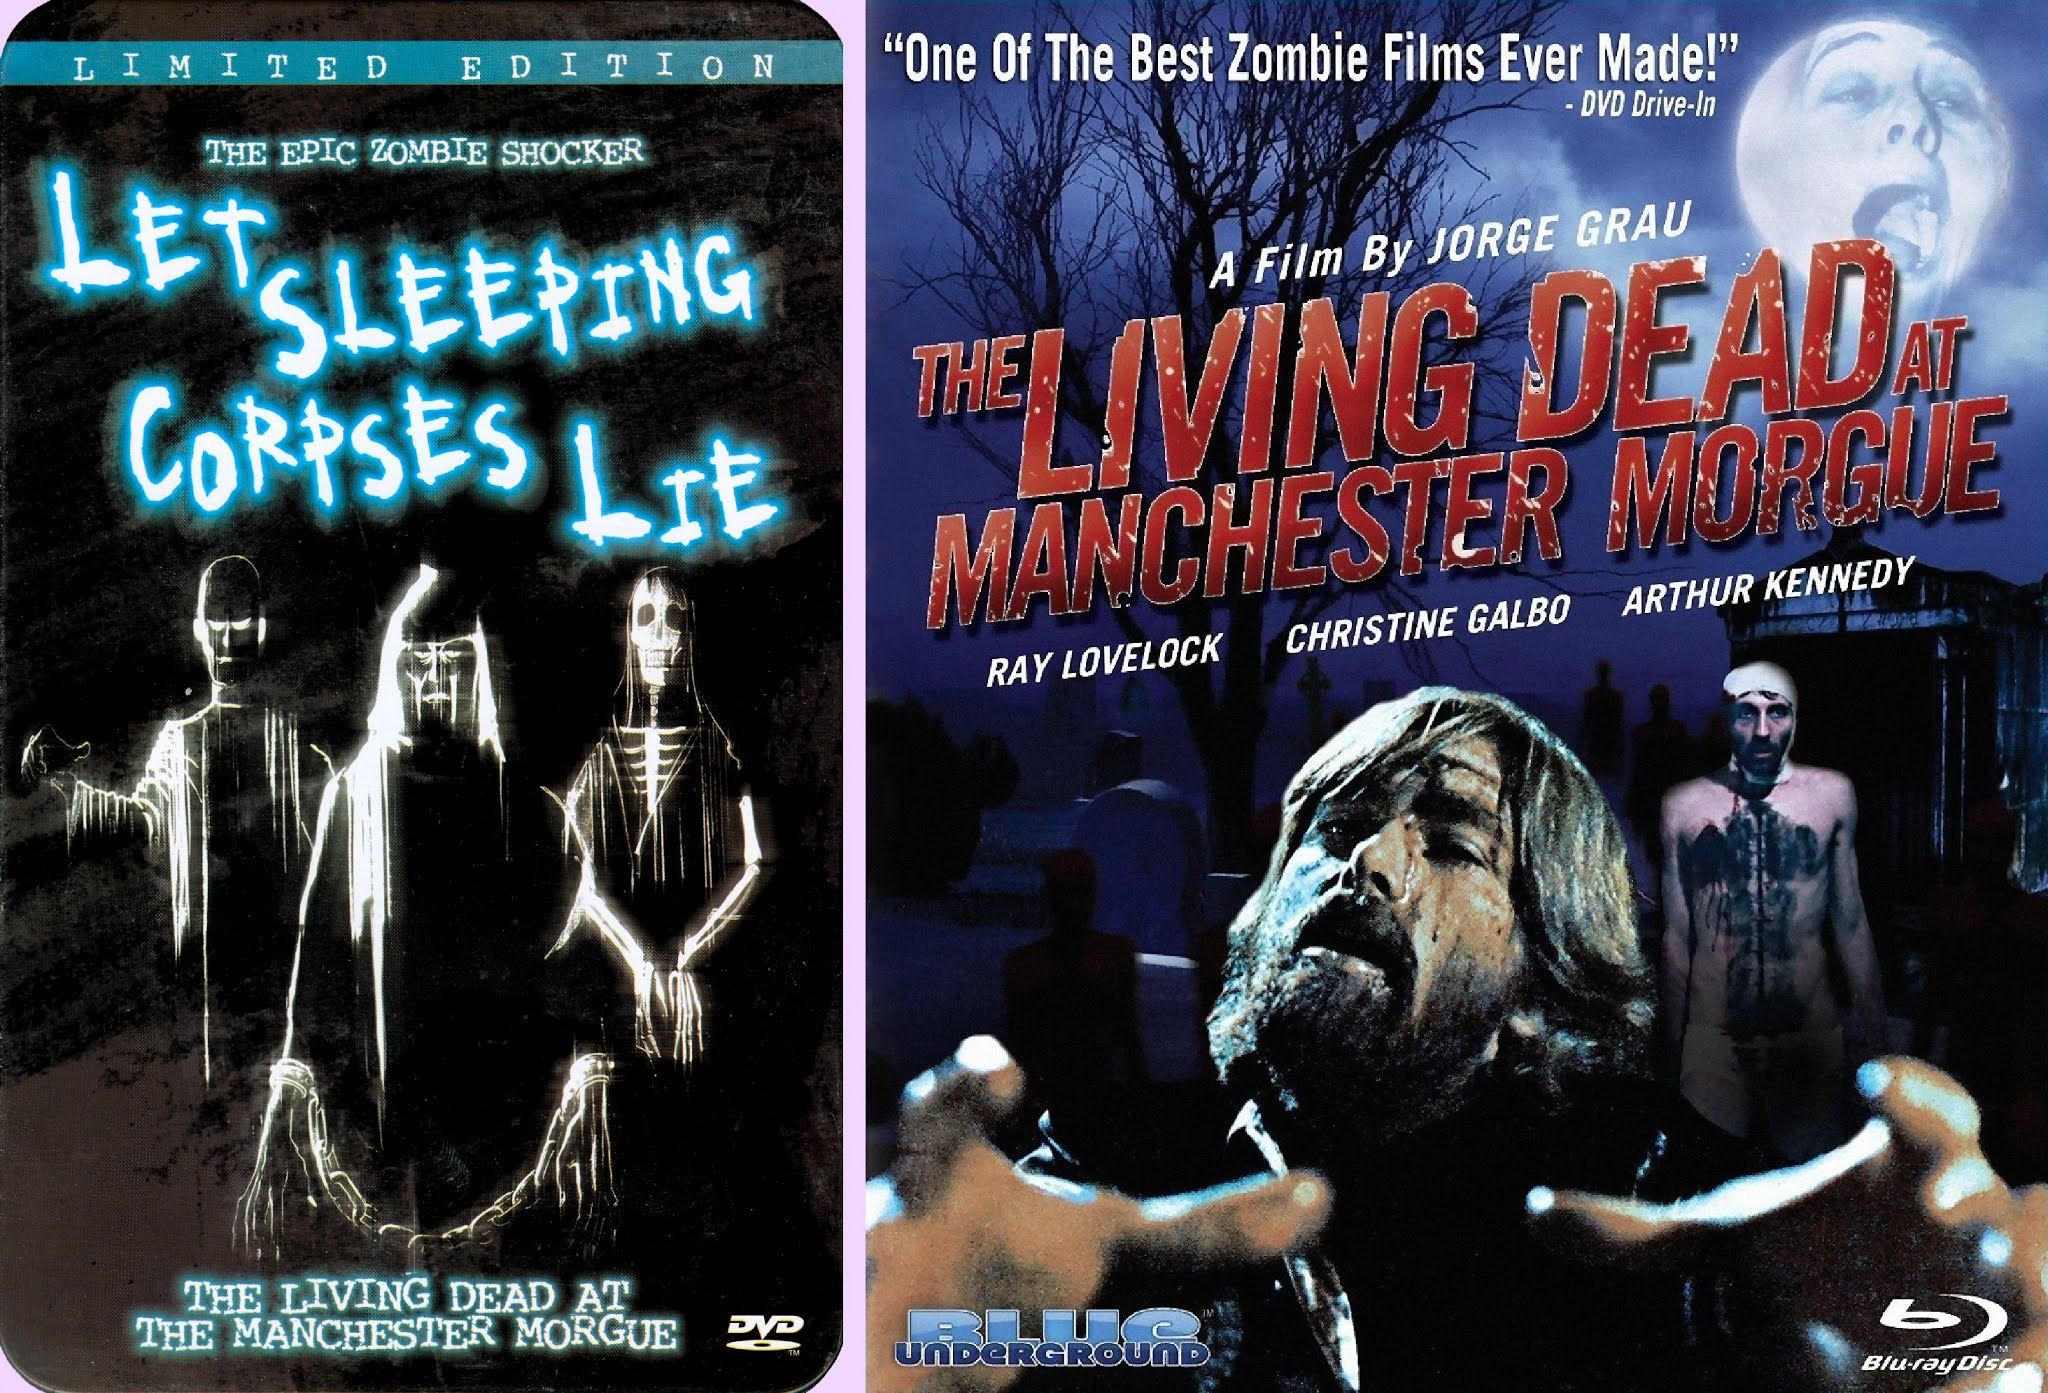 DVD Exotica: A Pair of Blue Undergrounds #2: The Living Dead